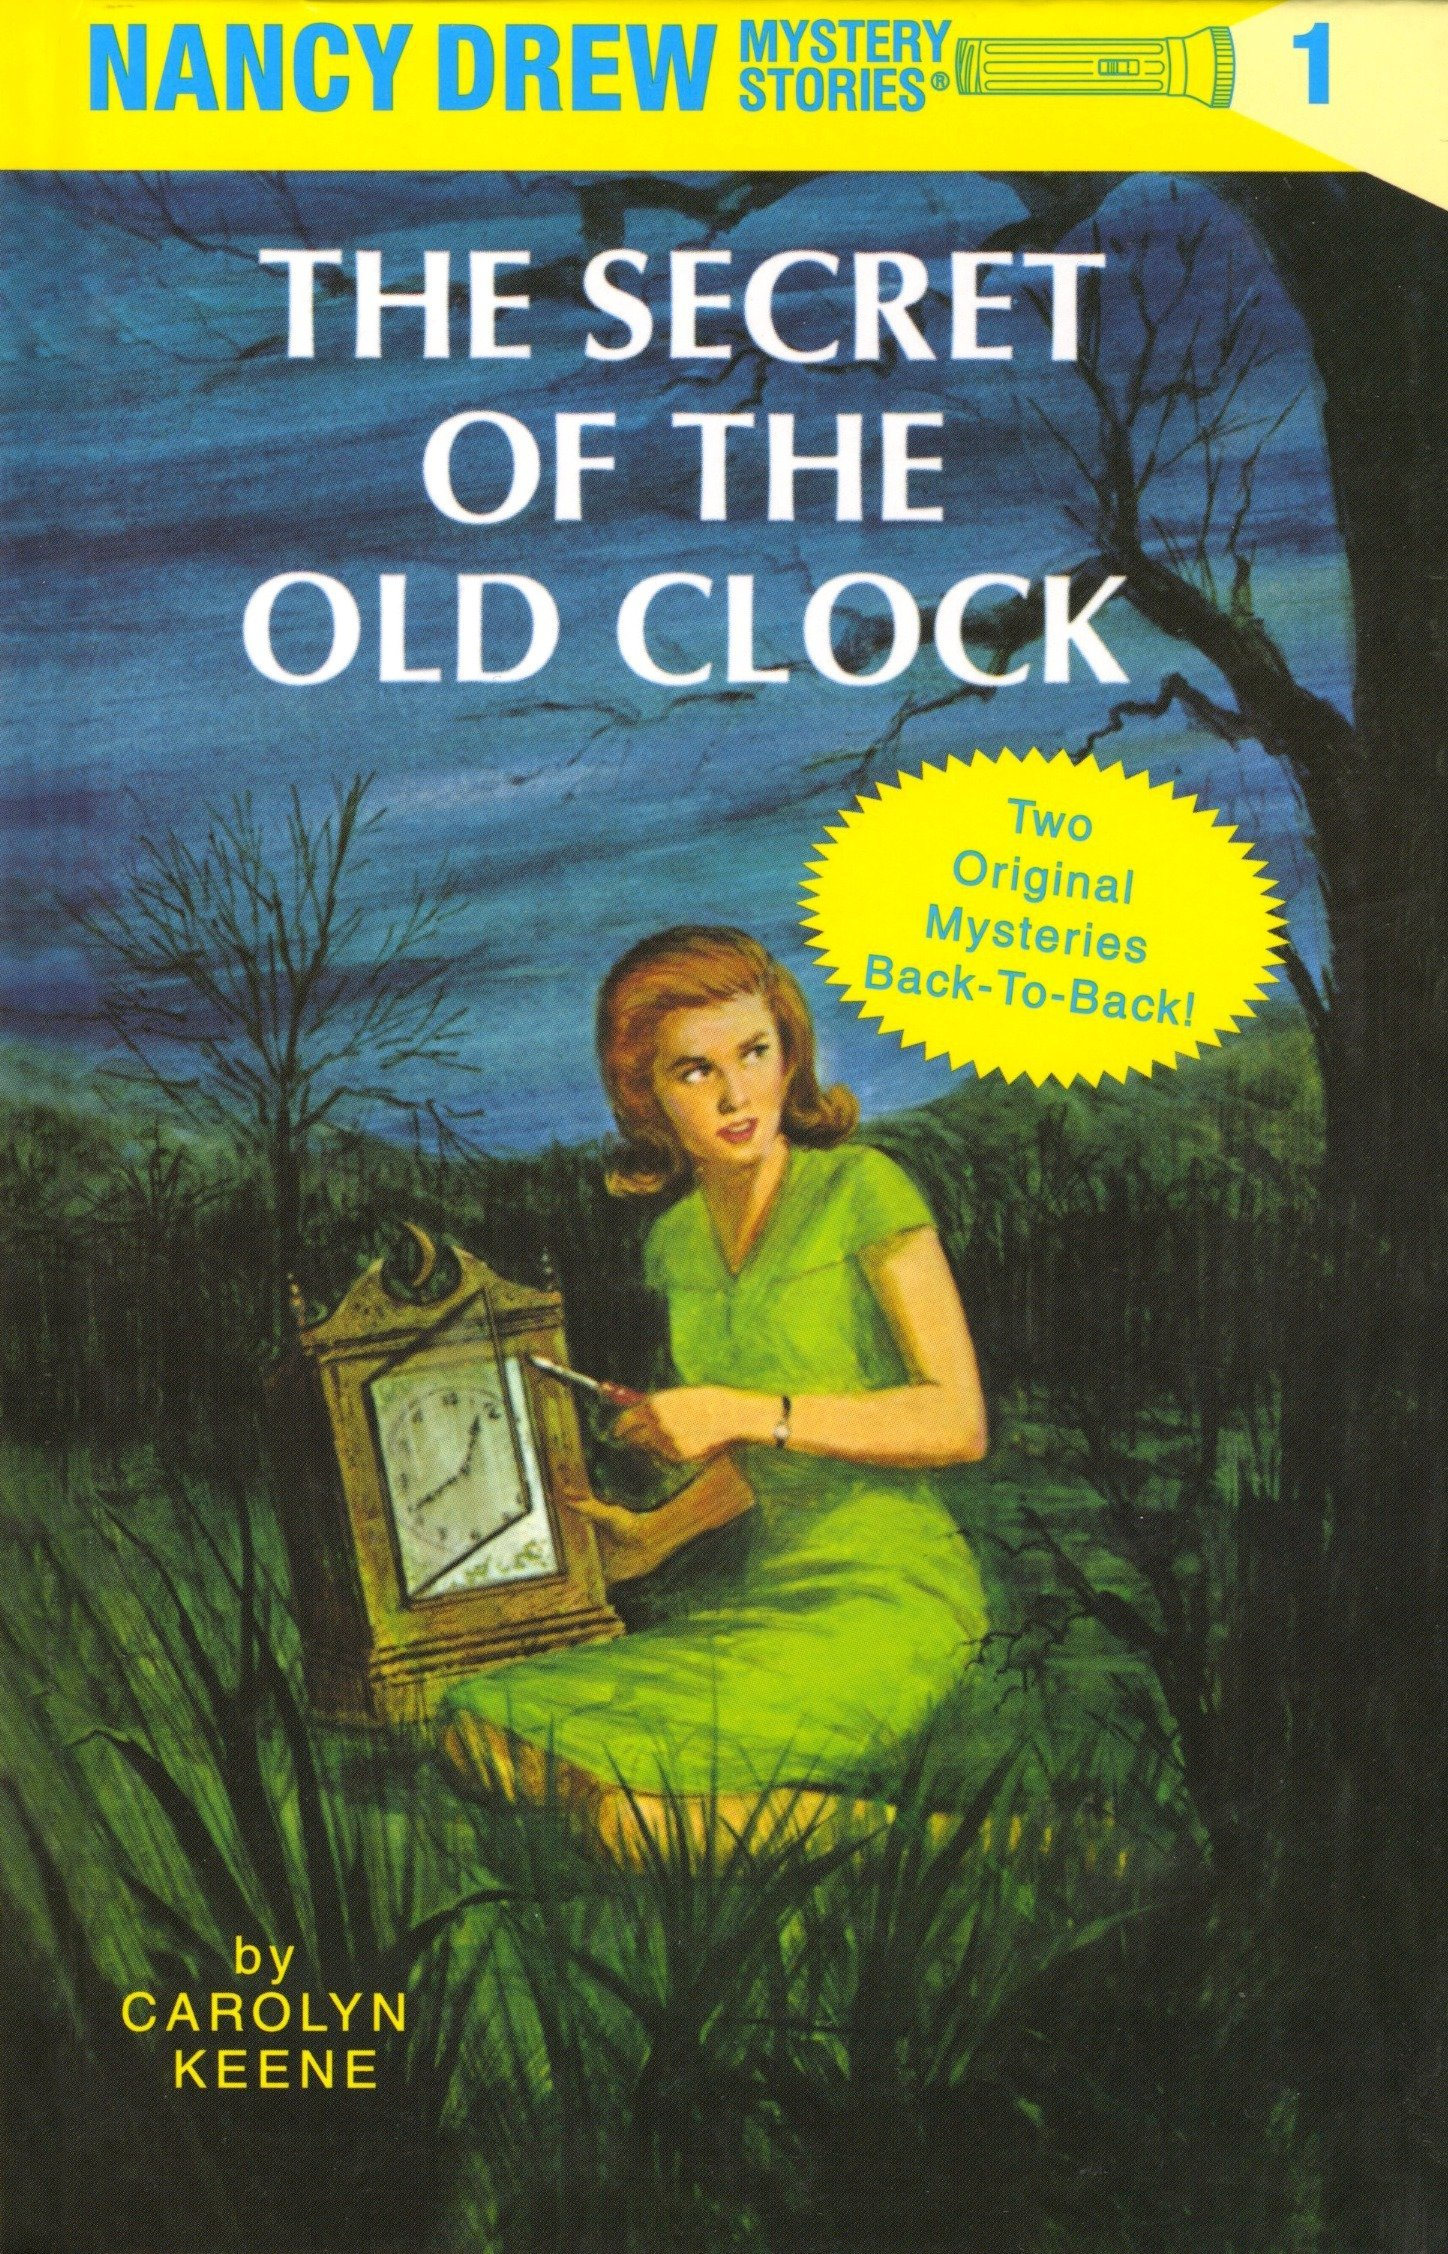 Nancy Drew Mysteries: The Secret of the Old Clock